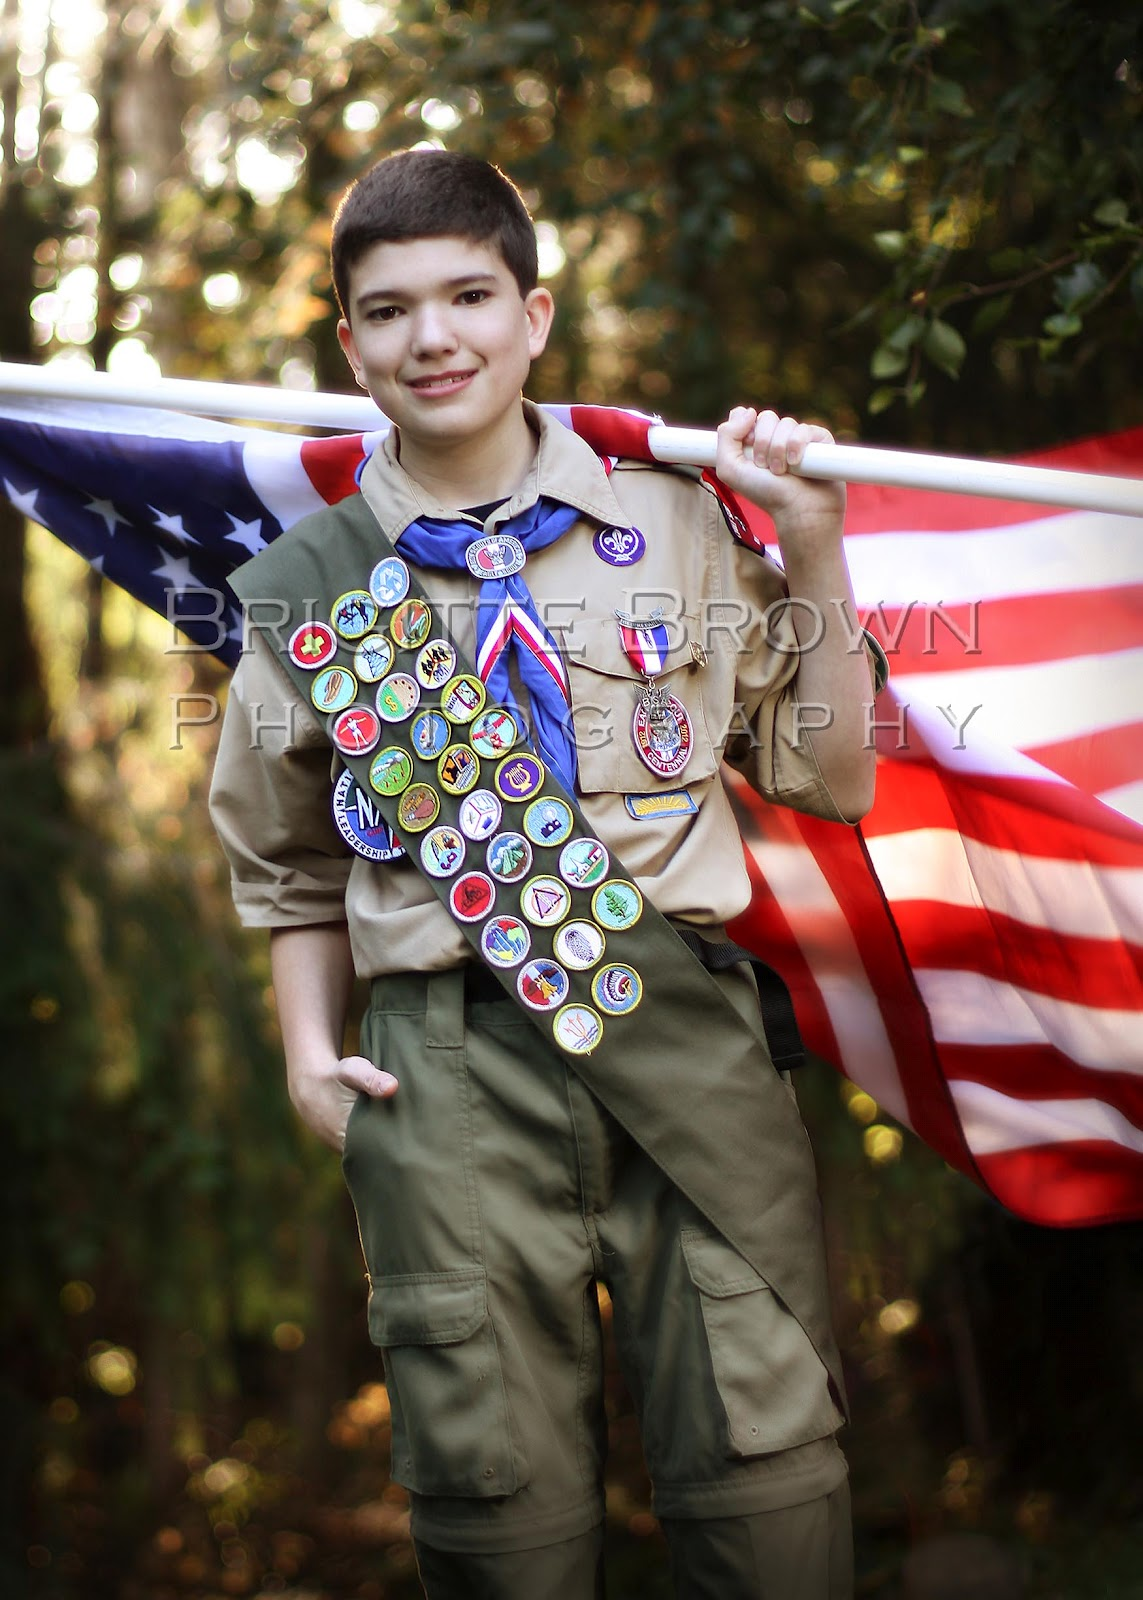 brigitte brown photography the eagle scout